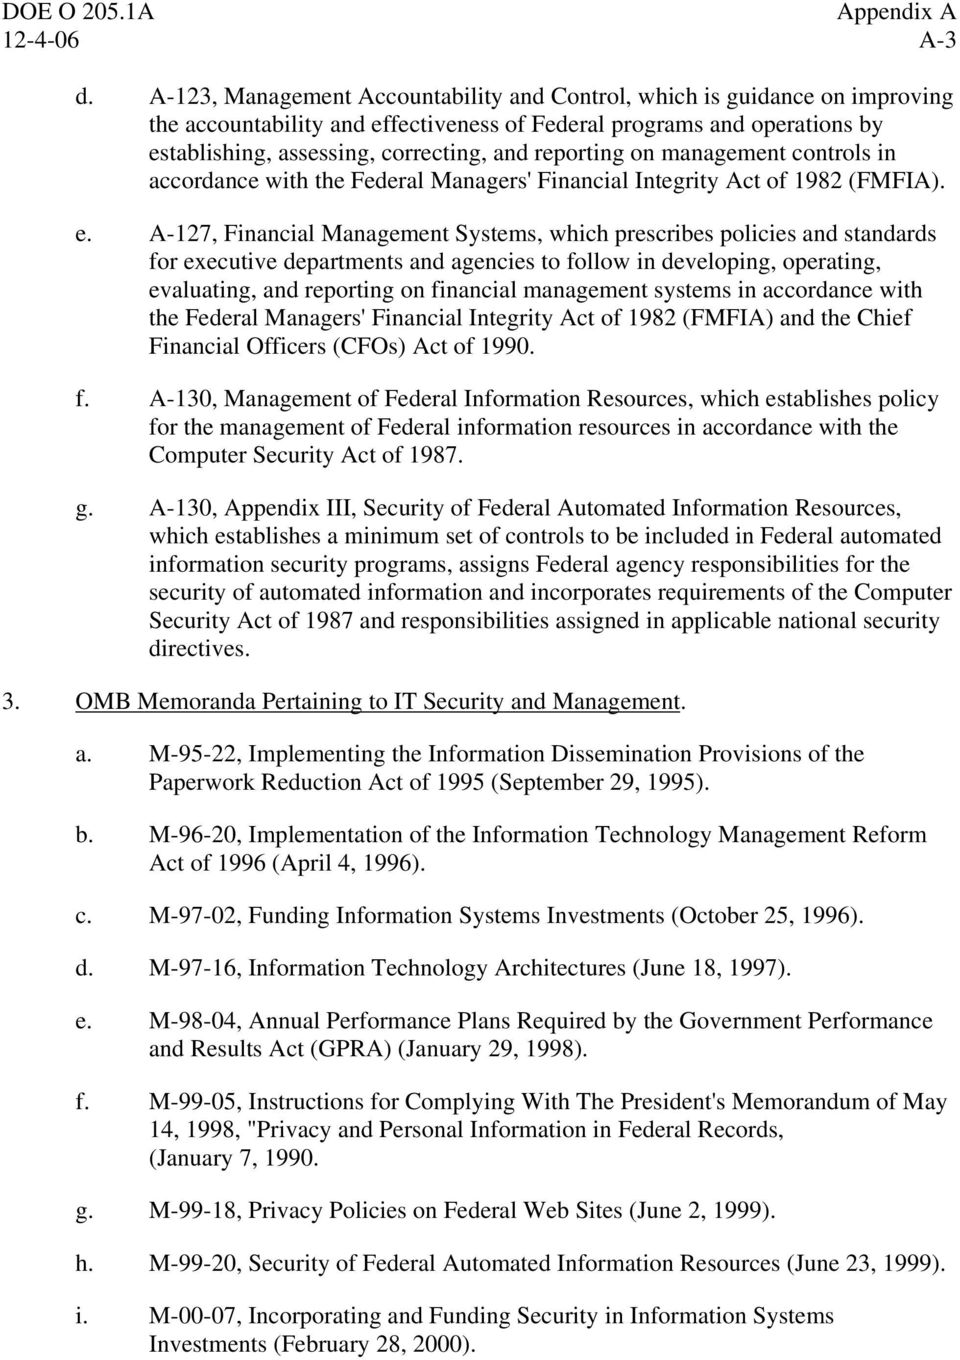 reporting on management controls in accordance with the Federal Managers' Financial Integrity Act of 1982 (FMFIA). e.